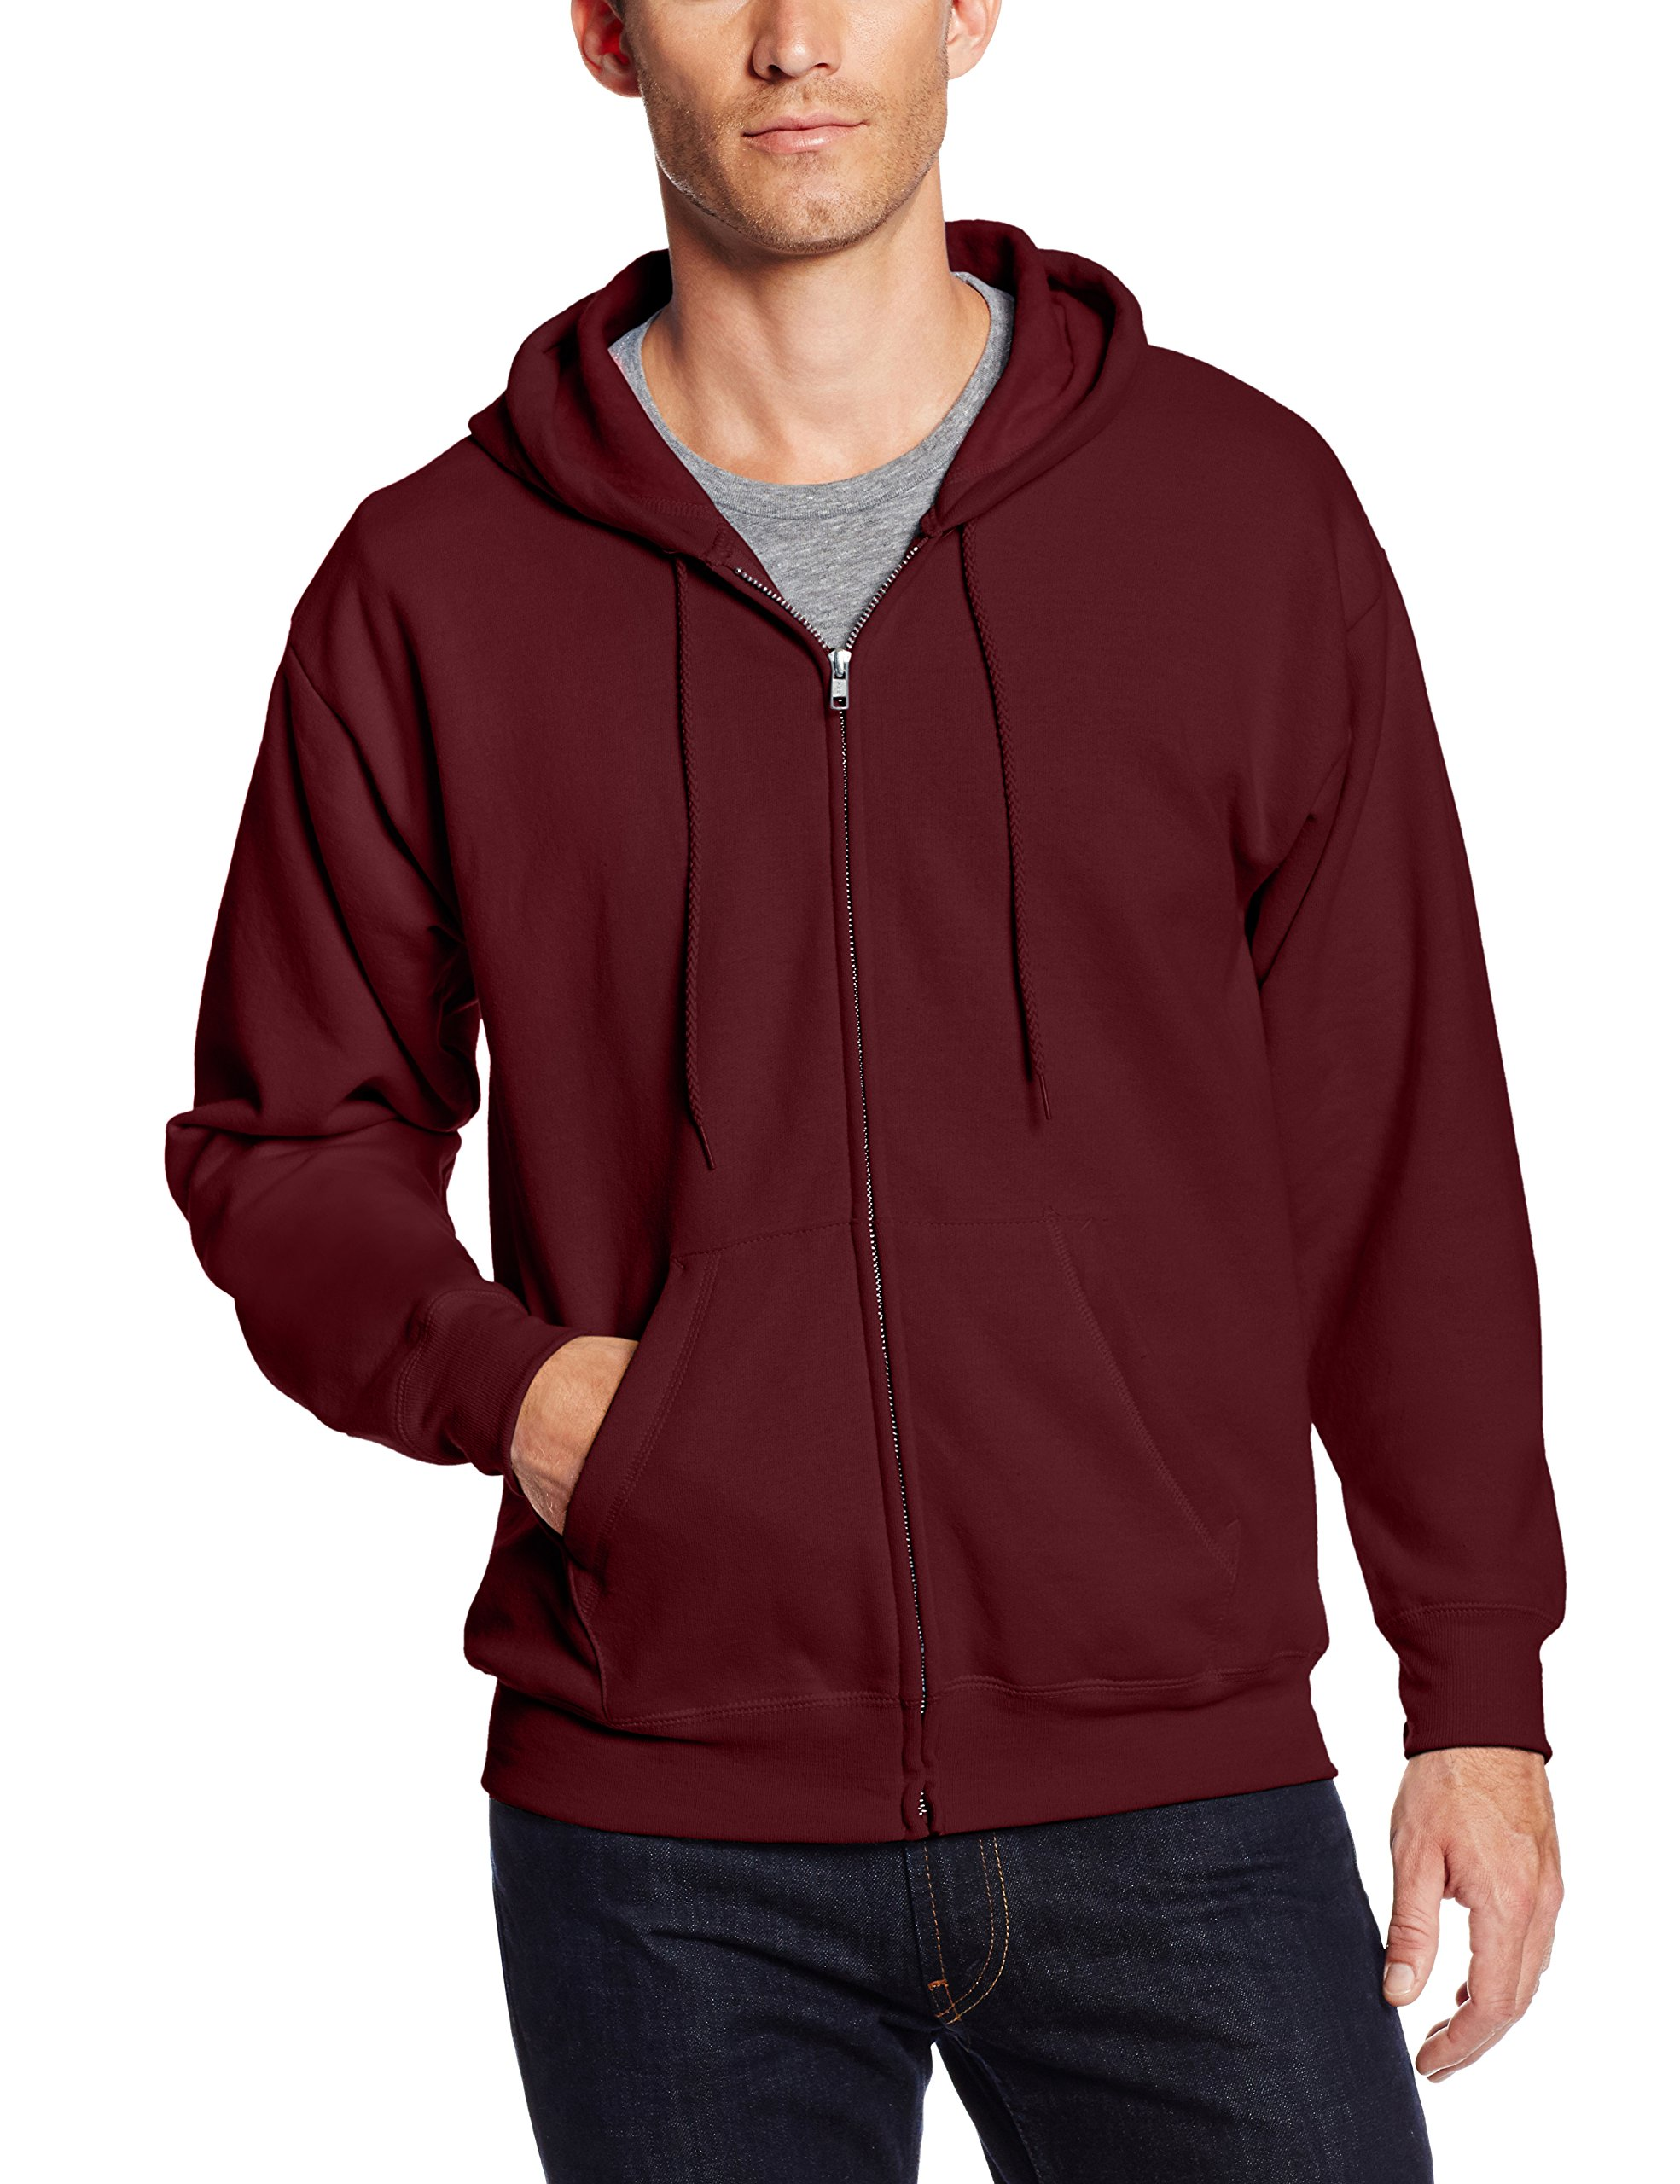 Hanes Men's Full-Zip EcoSmart Fleece Hoodie, Maroon, Large